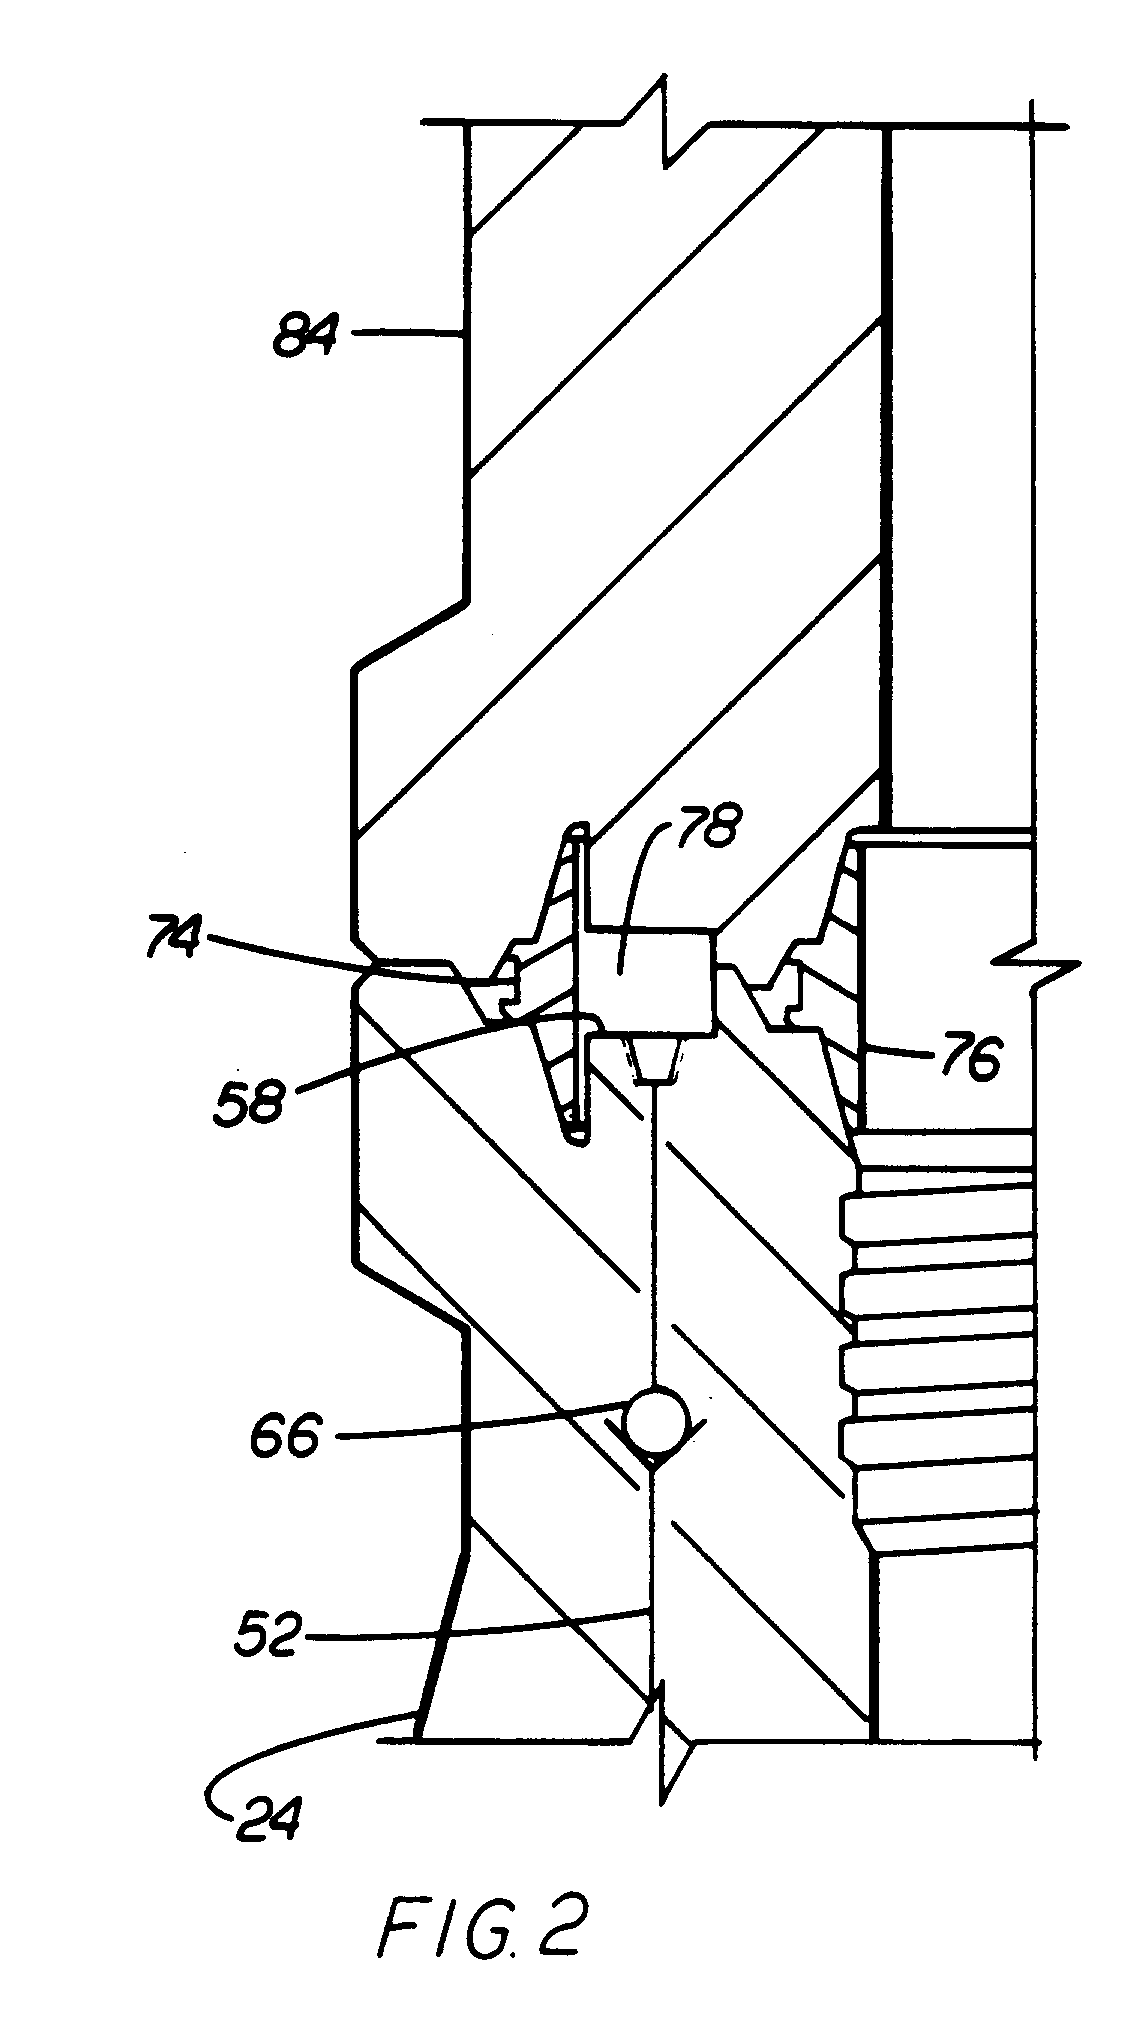 patent ep0373766b1 - subsea wellhead with annulus monitoring system